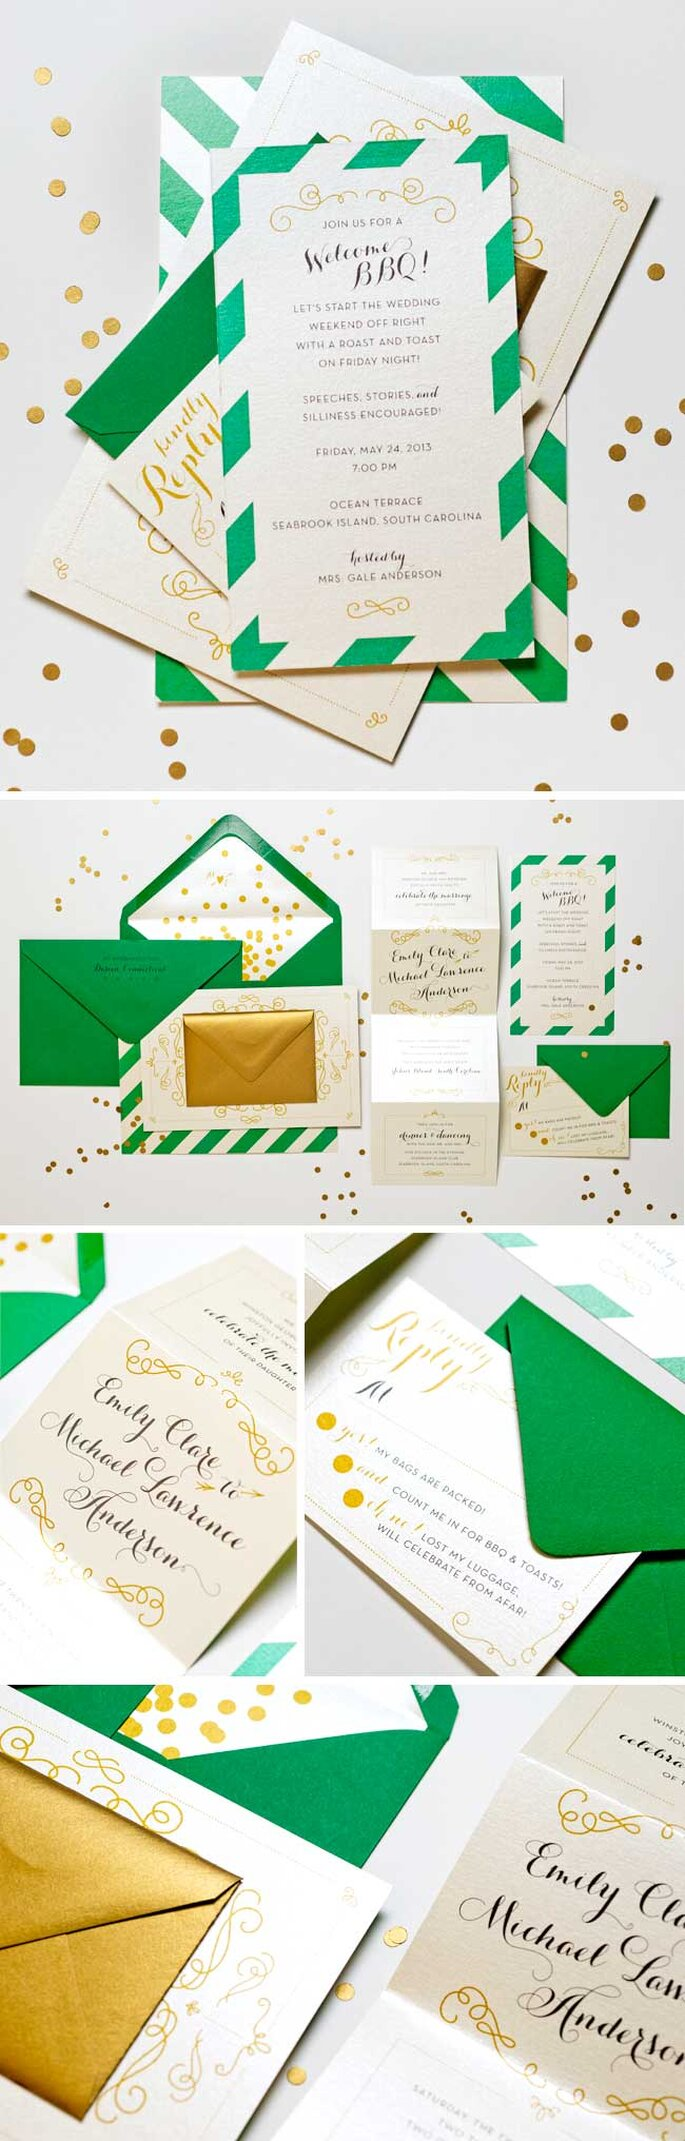 Boda en verde - Lilly and Louise